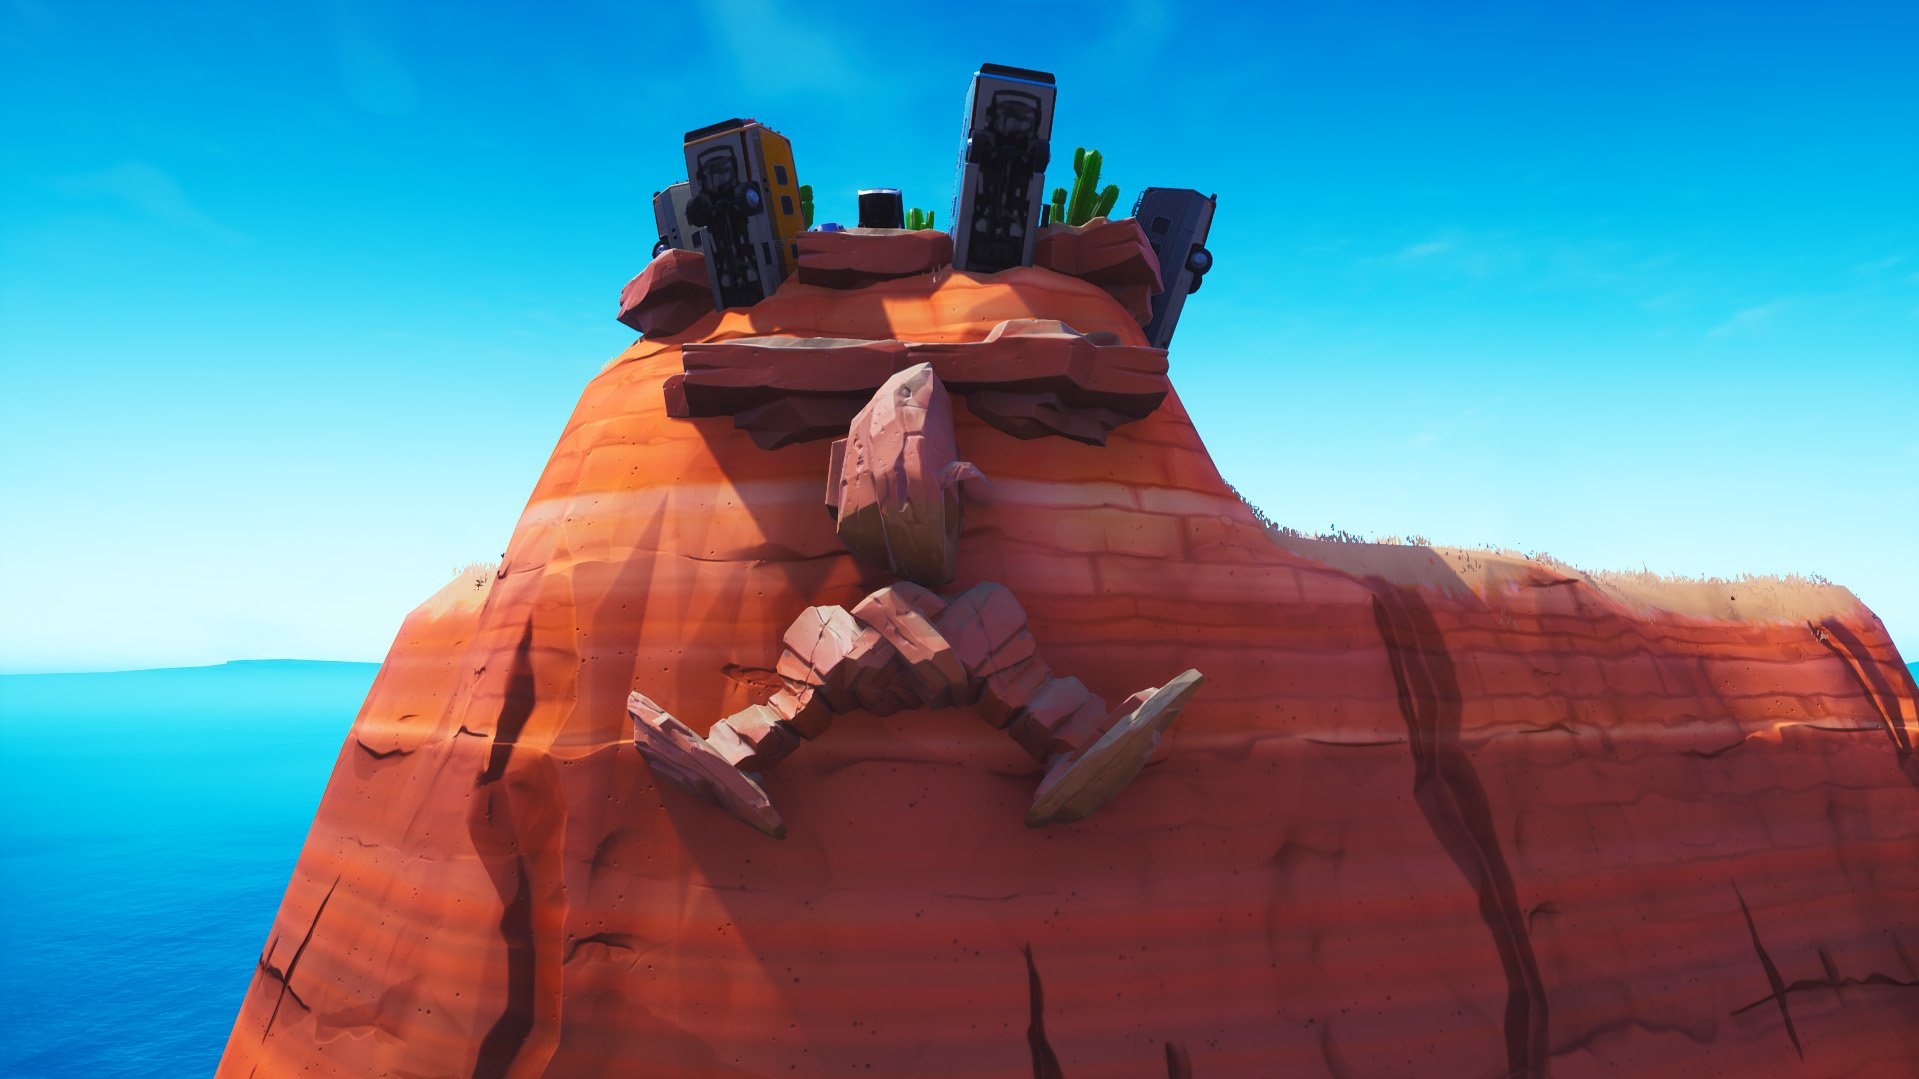 Fortnite giant face with a crown